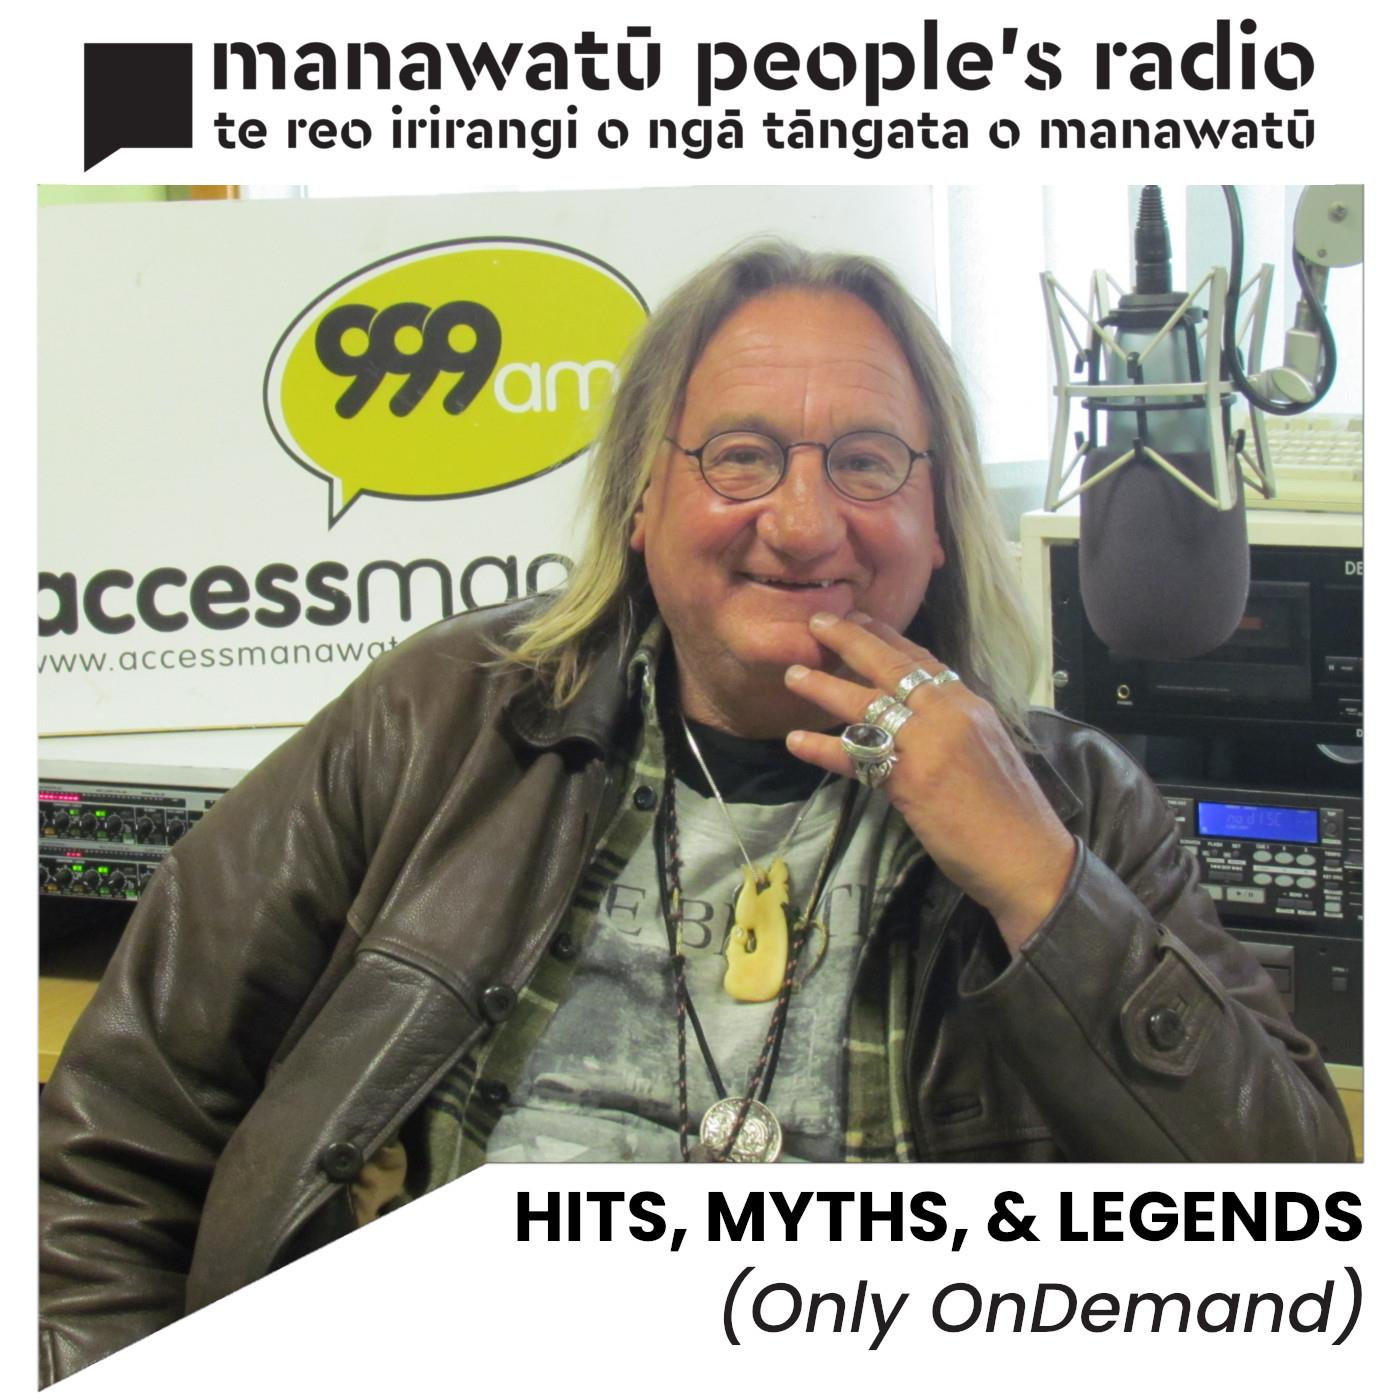 Hits, Myths, and Legends (OnDemand Only)-25-05-2020 -